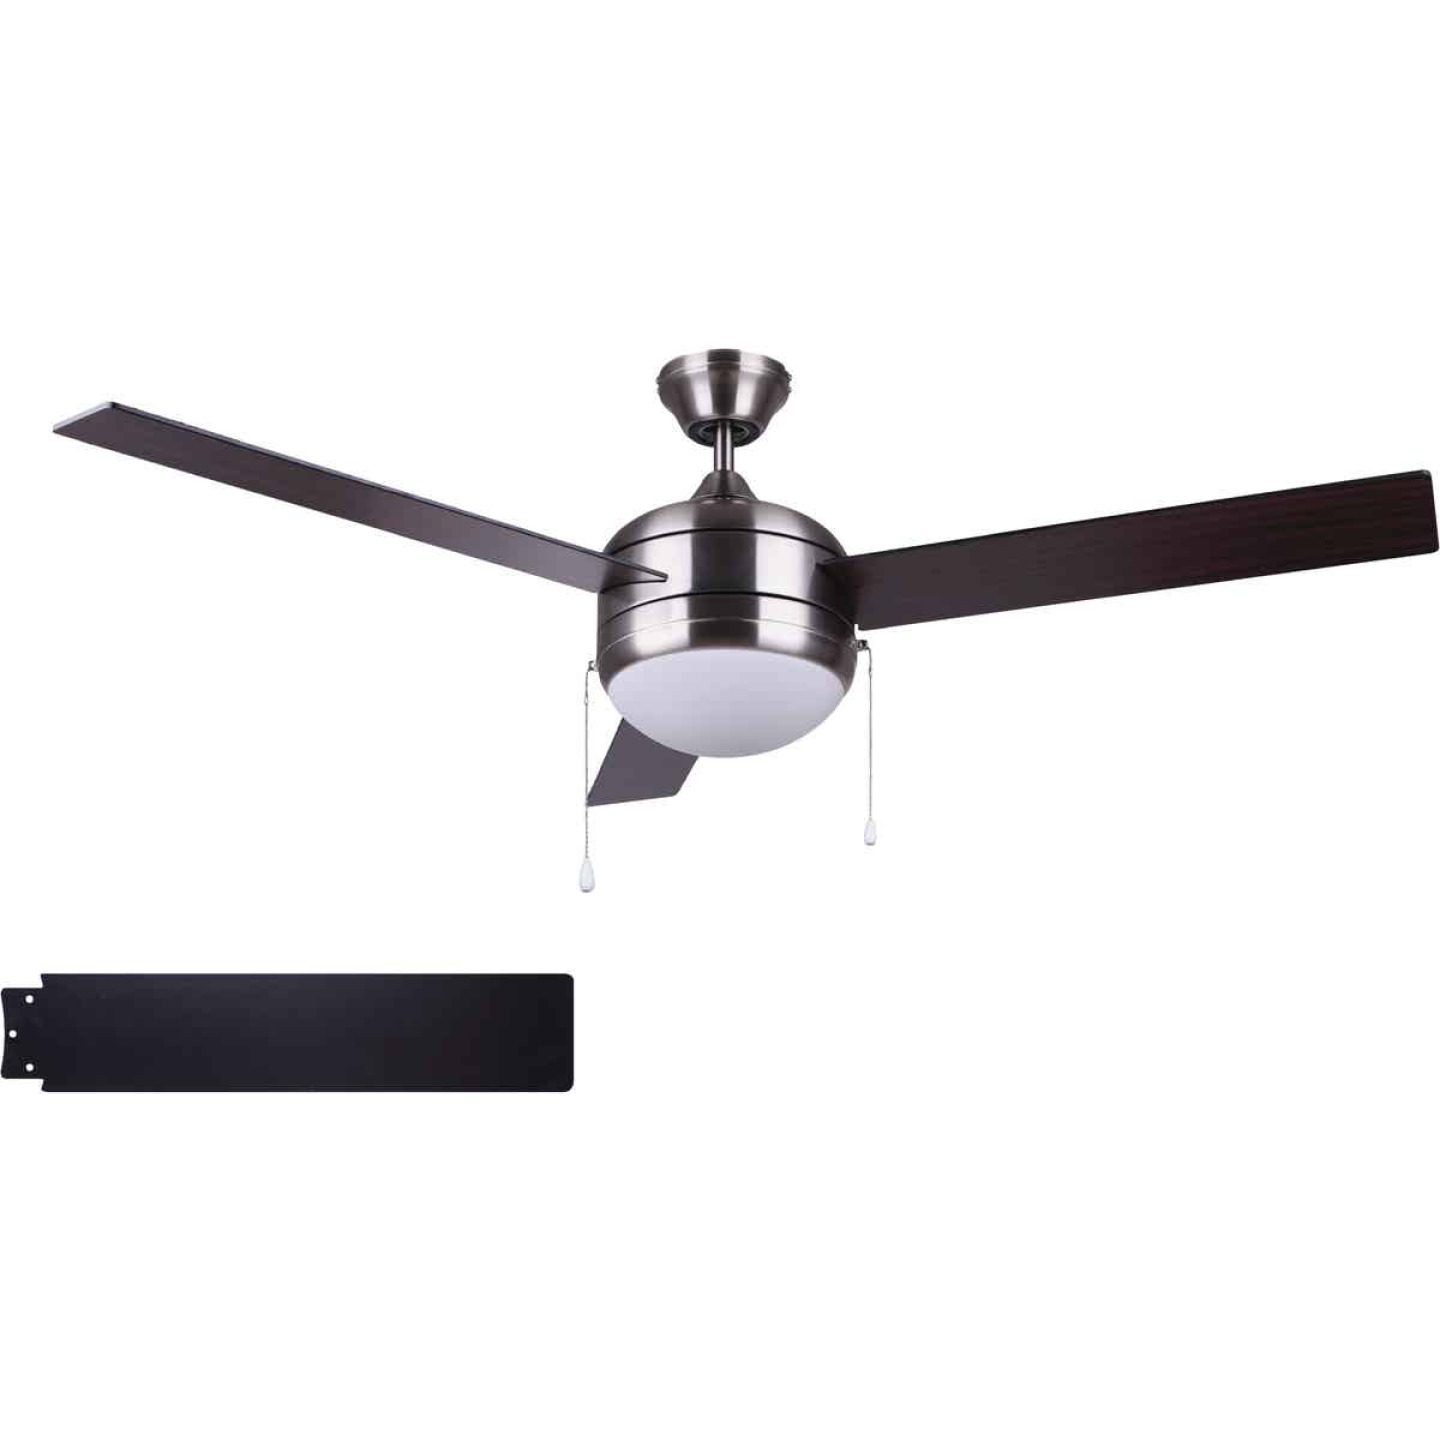 Home Impressions Sardiac 52 In. Brushed Nickel Outdoor Ceiling Fan with Light Kit Image 1